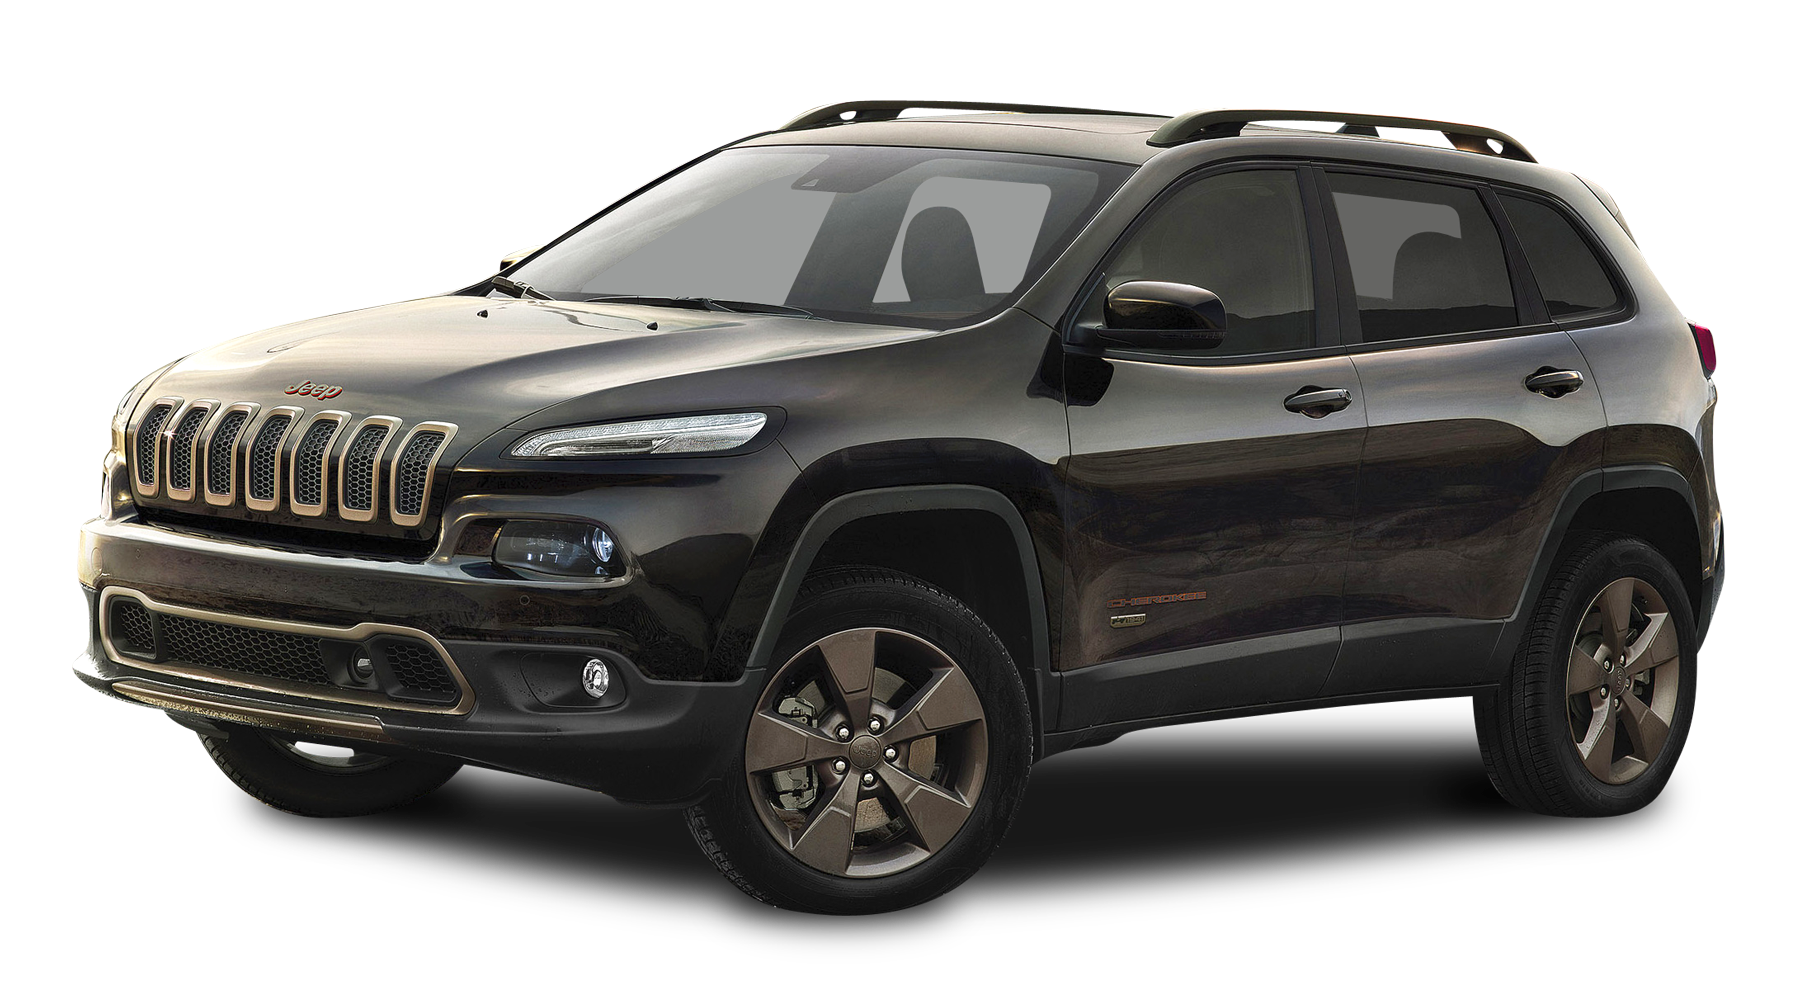 Jeep clipart file. Brown cherokee car png